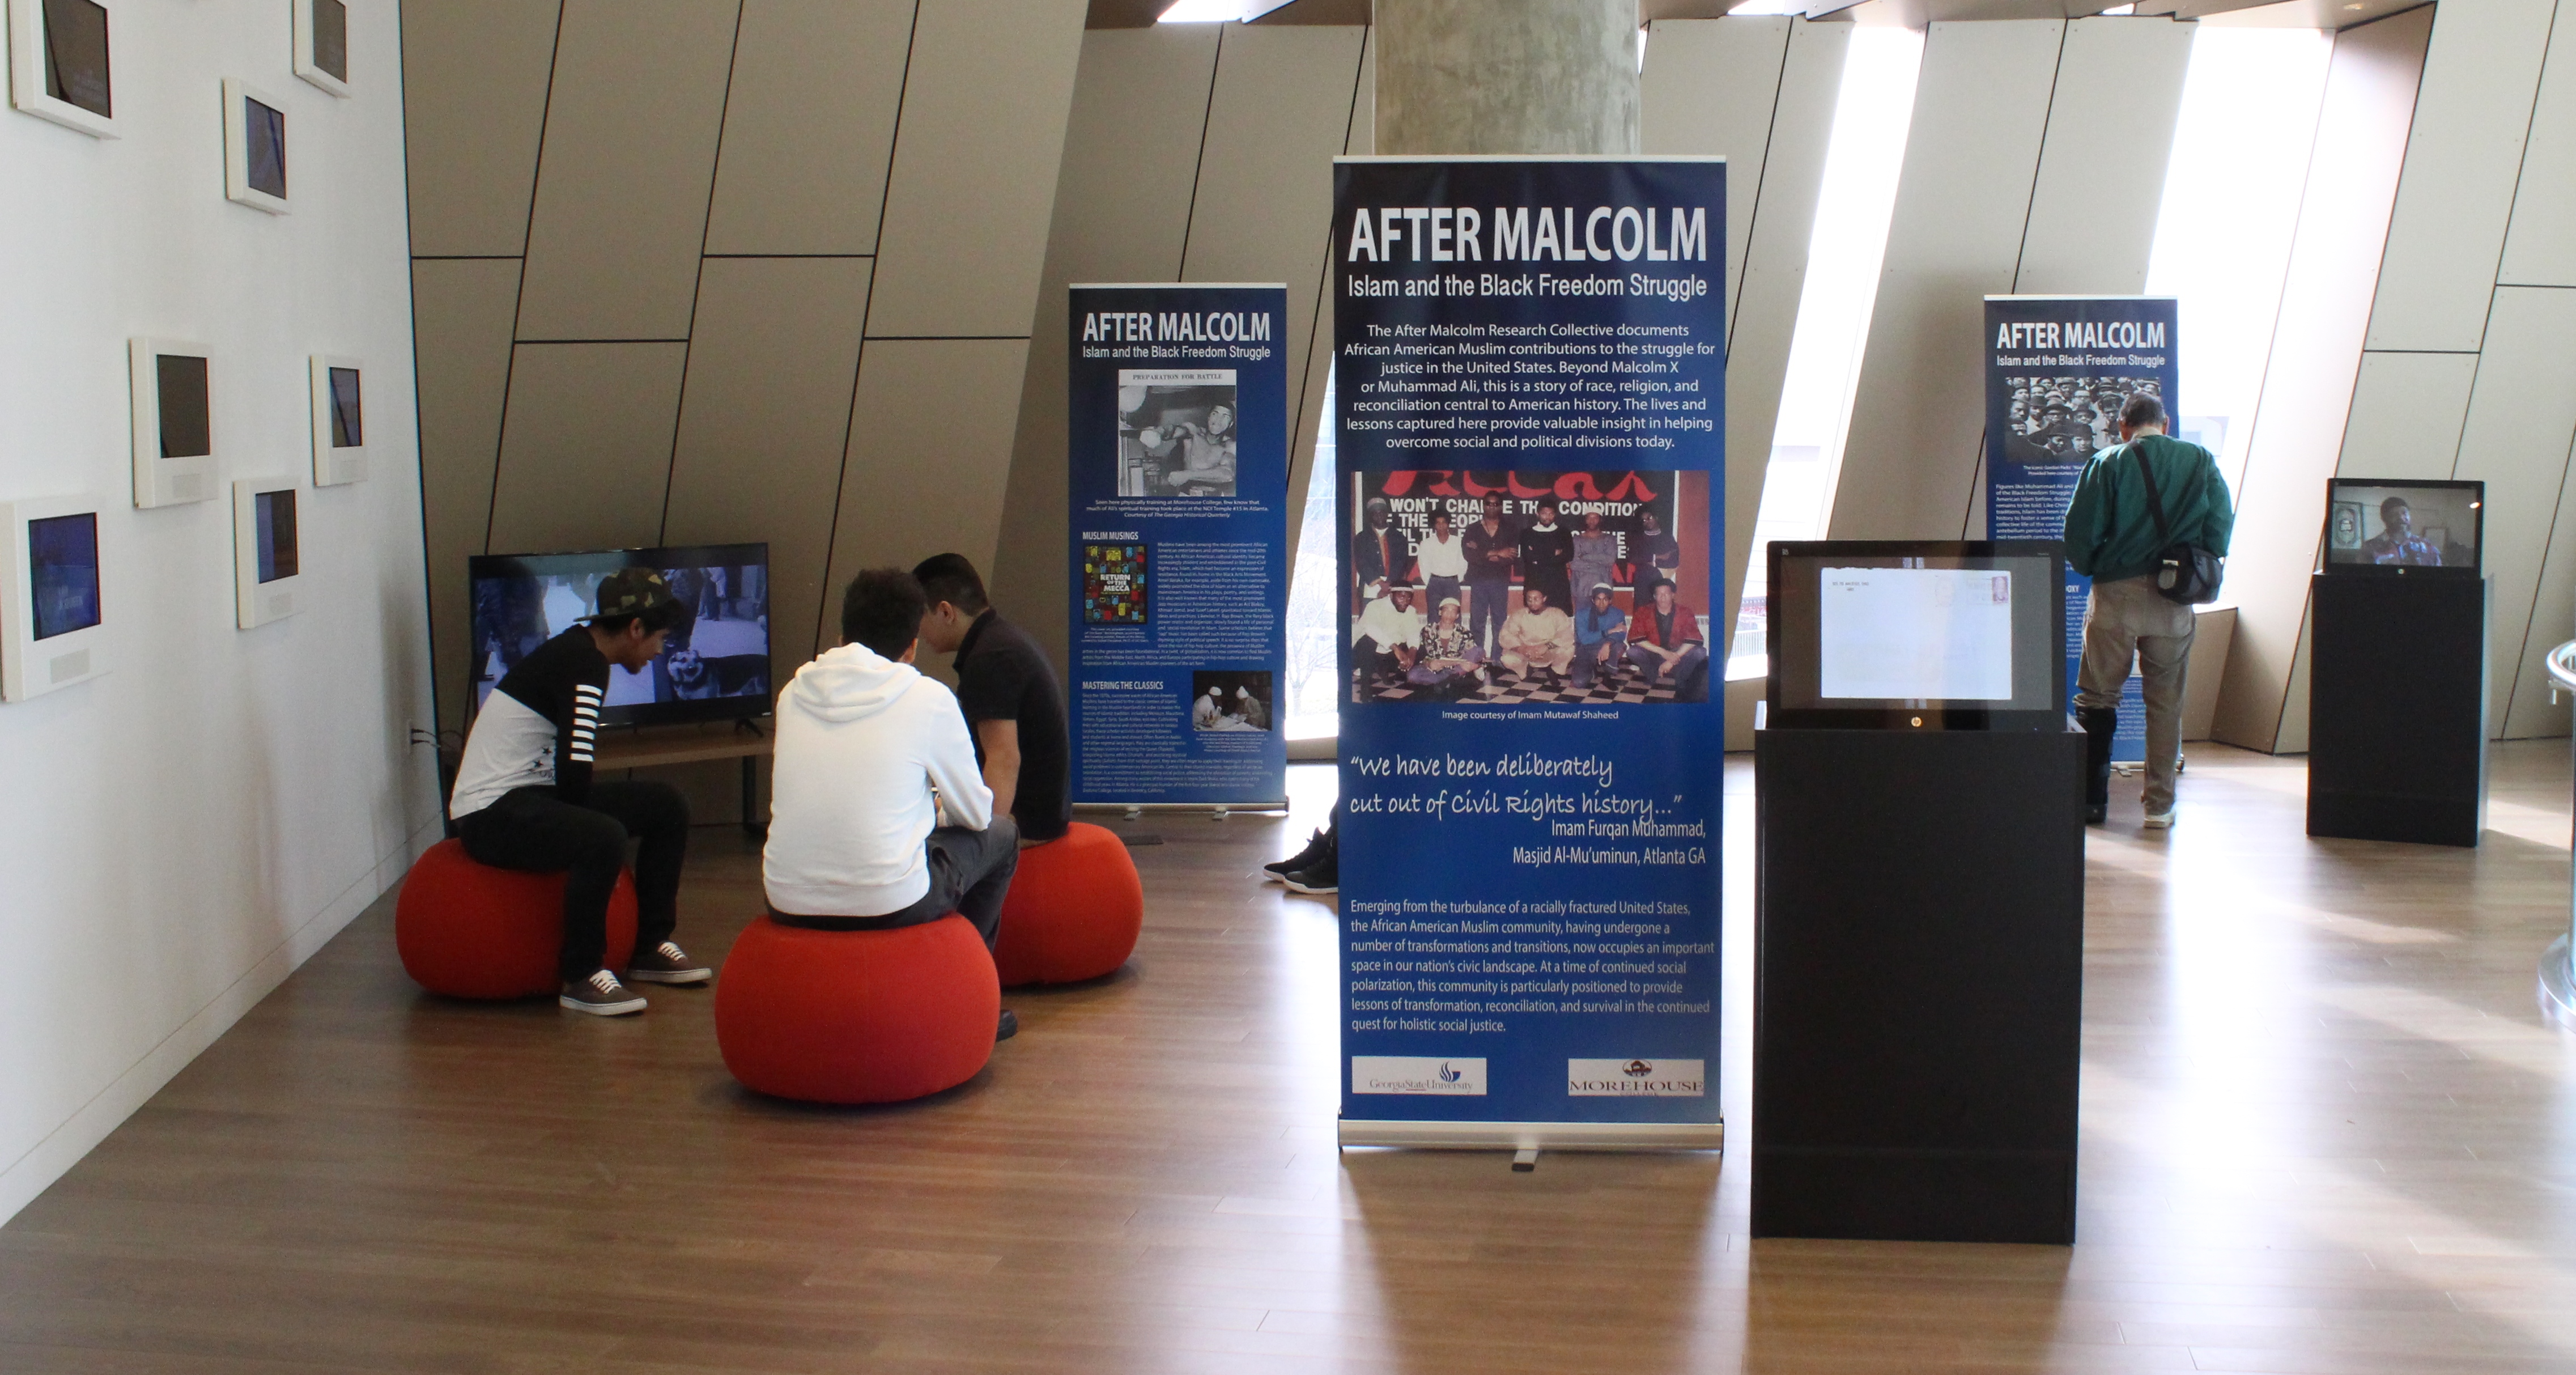 After Malcolm Project to Exhibit at National Civil and Human Rights Museum